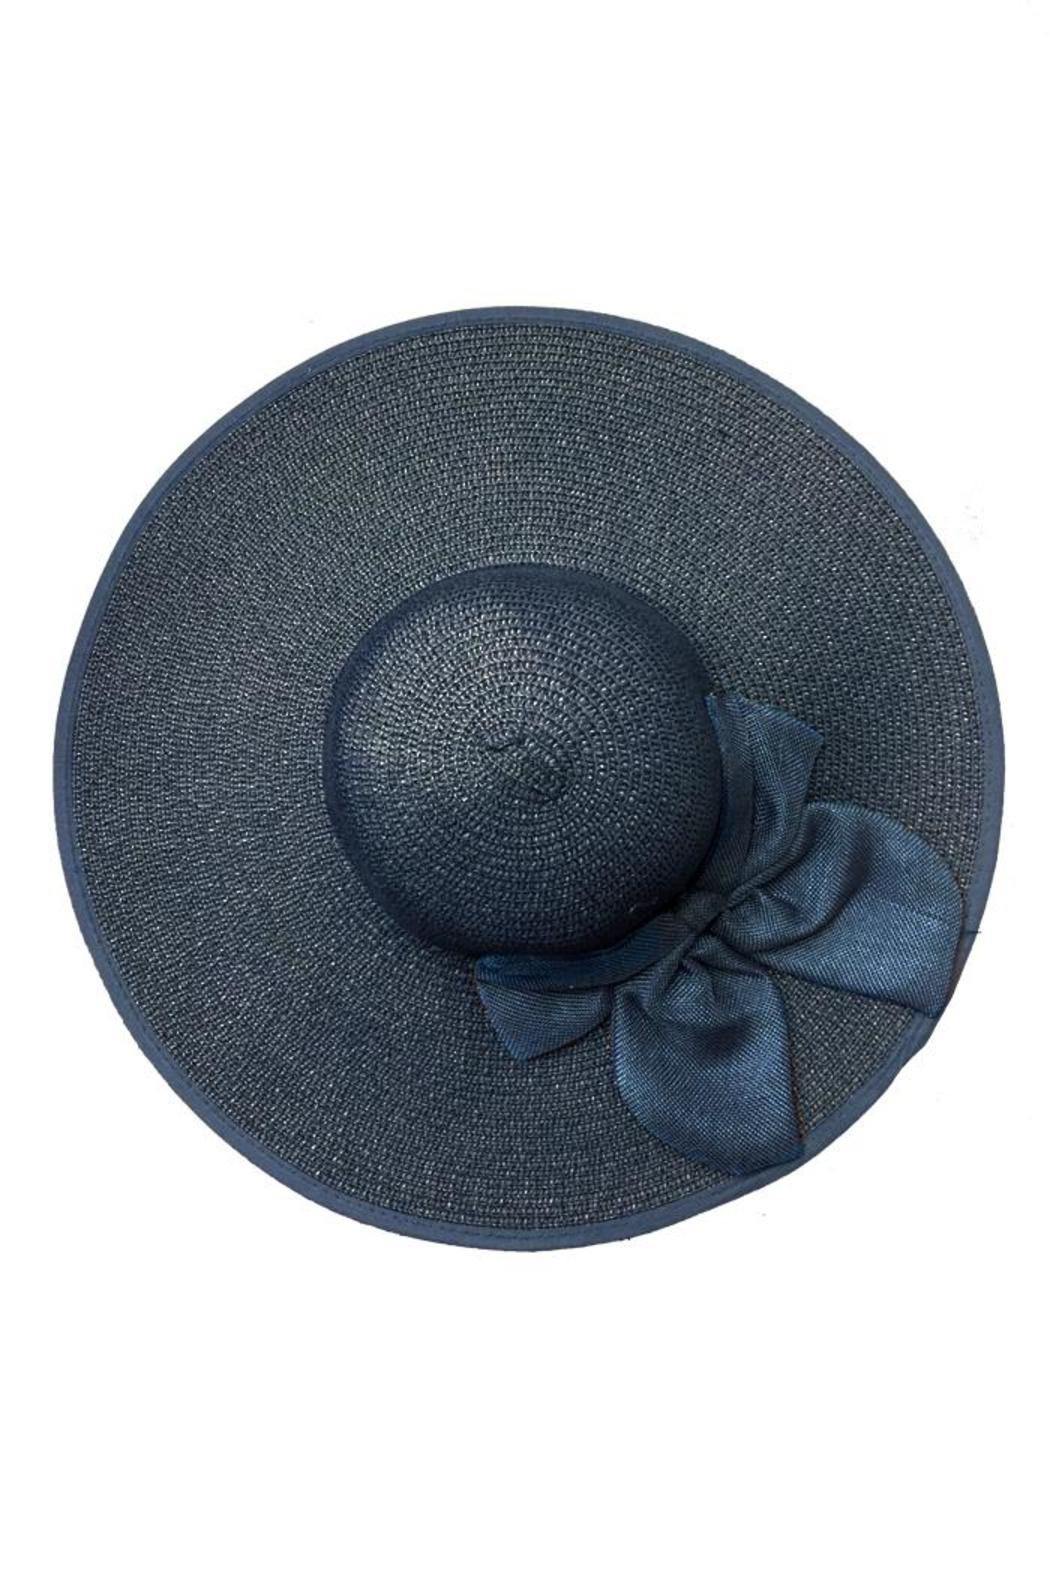 tu-anh boutique Navy Bow Sunhat - Front Full Image